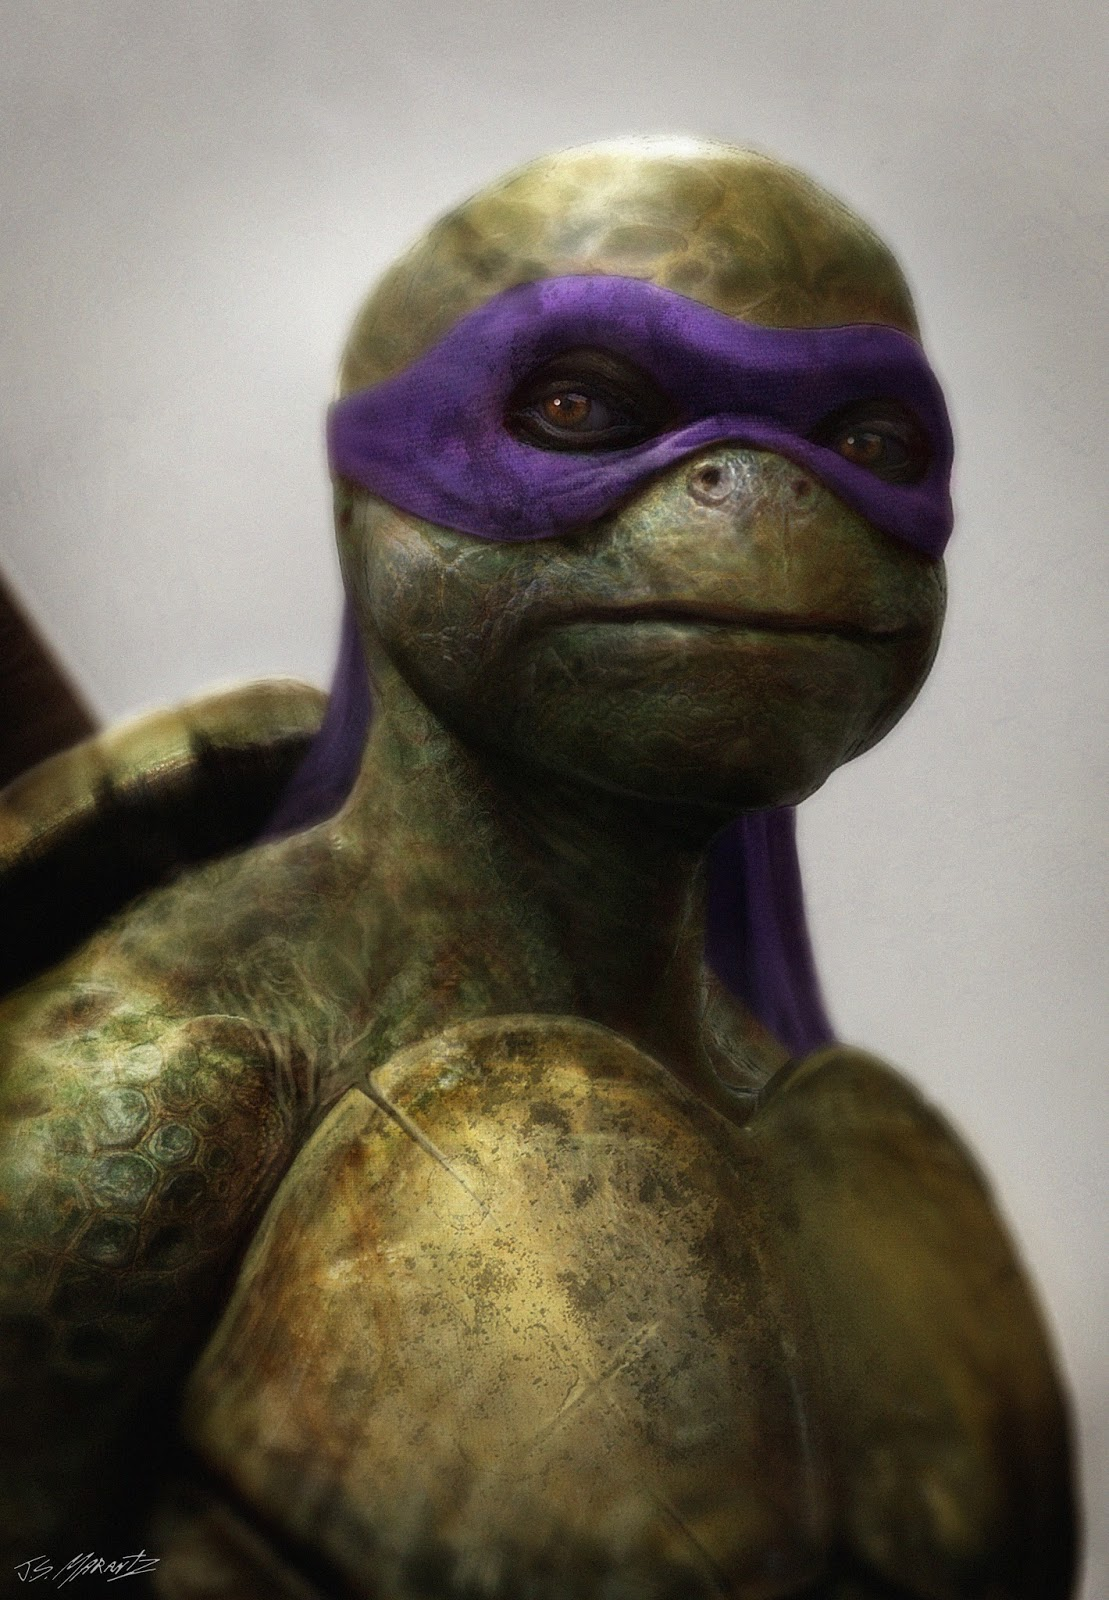 Teenage Mutant Ninja Turtles Concept Designs By Jerad